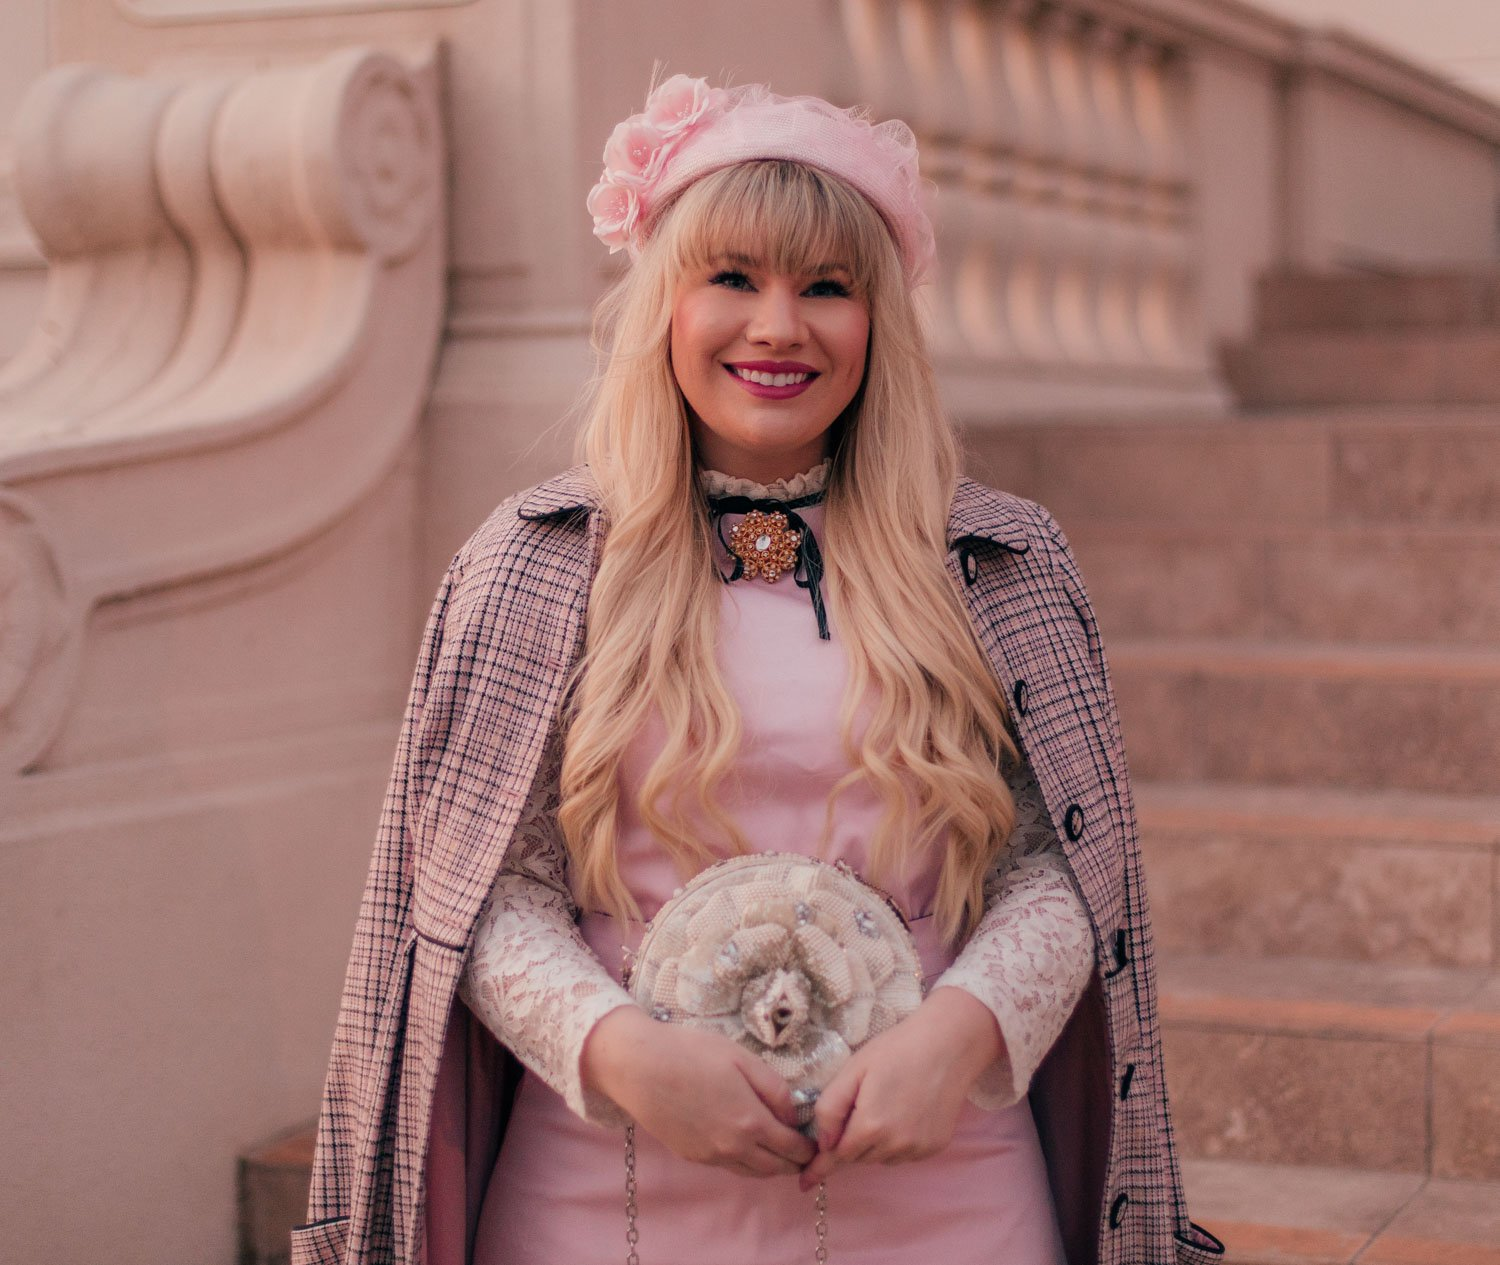 Feminine Fashion Blogger Elizabeth Hugen of Lizzie in Lace wears a girly vintage aesthetic outfit for spring with a pink pillbox hat